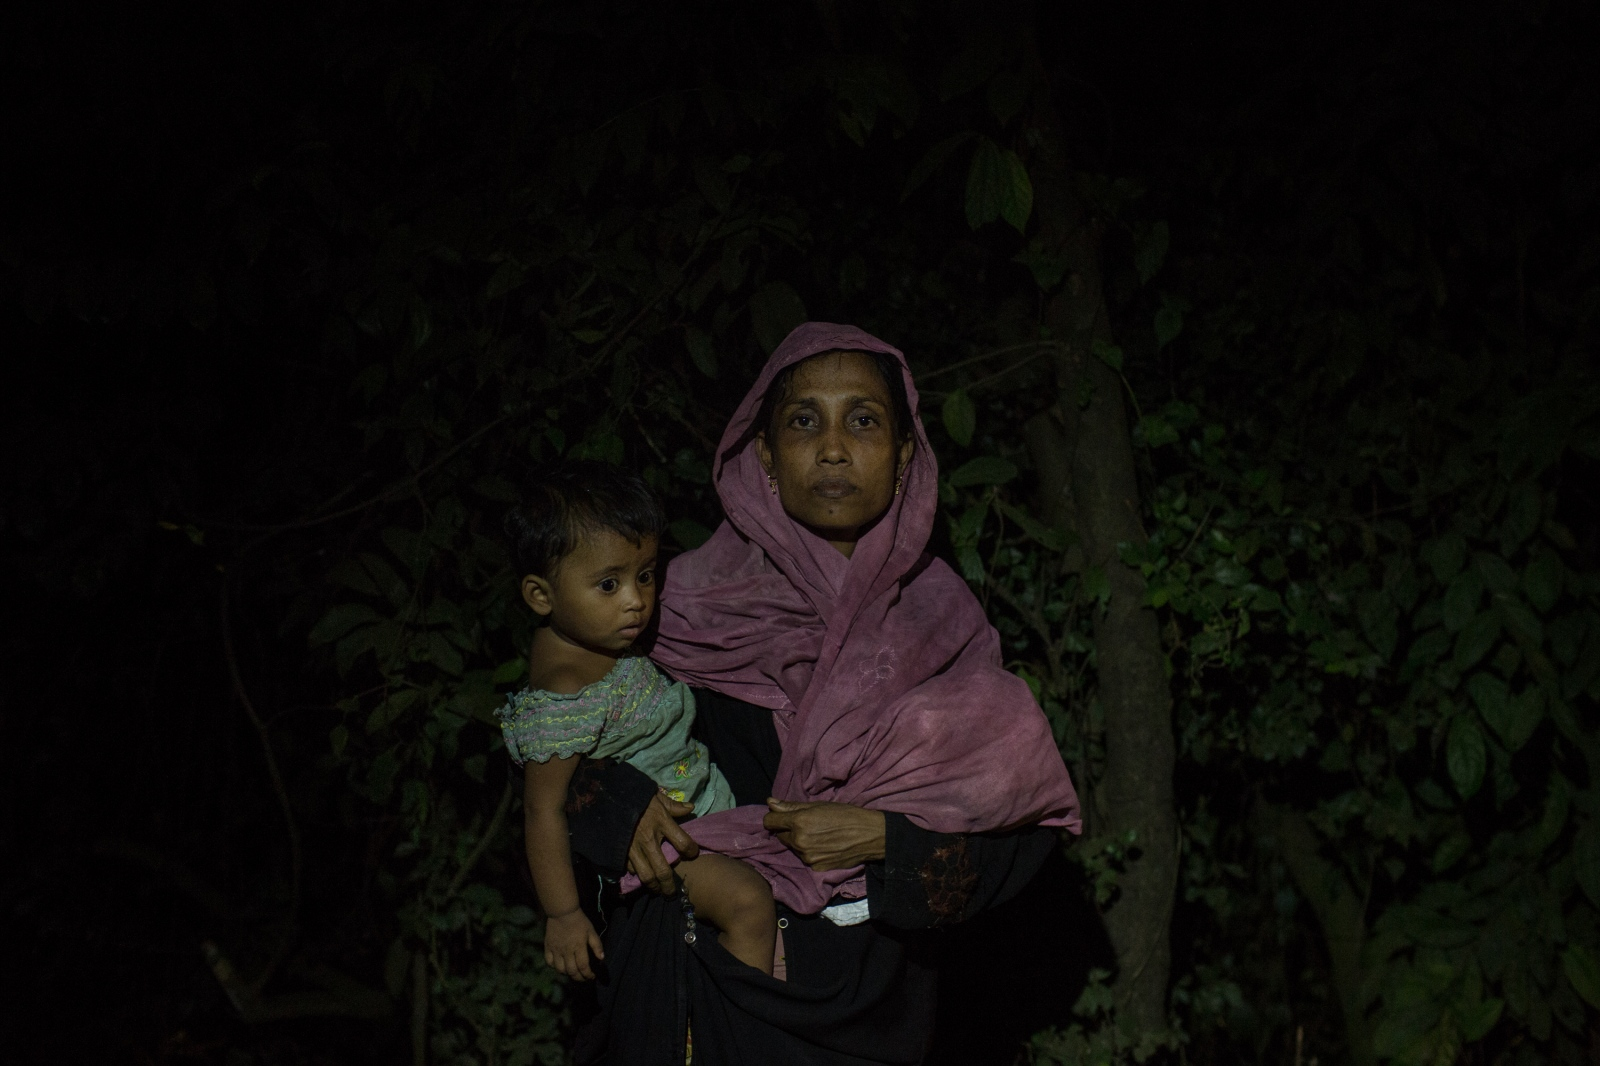 Anwara, 22, waits with one of her two children by the side of the road for food and cash distributions near the Balukhali refugee camp in Bangladesh on Friday September 22, 2017. Anwara's husband was a day laborer and was killed 18 days ago by the Buddhist militias in her village. She arrived in Balukhali 12 days ago.